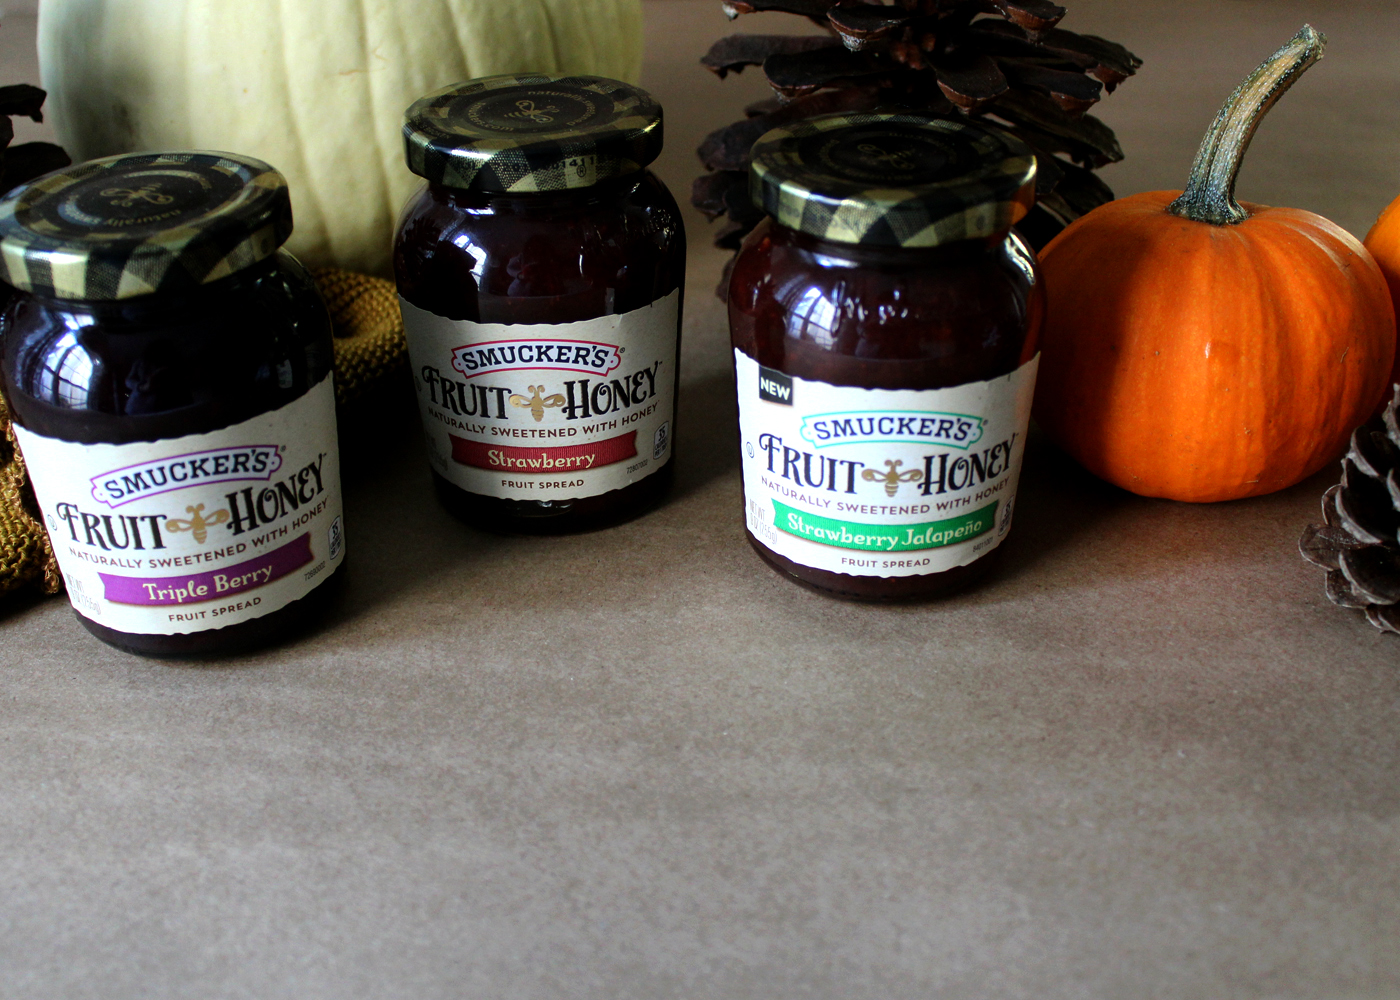 Varieities of Smucker's Fruit & Honey Fruit Spread